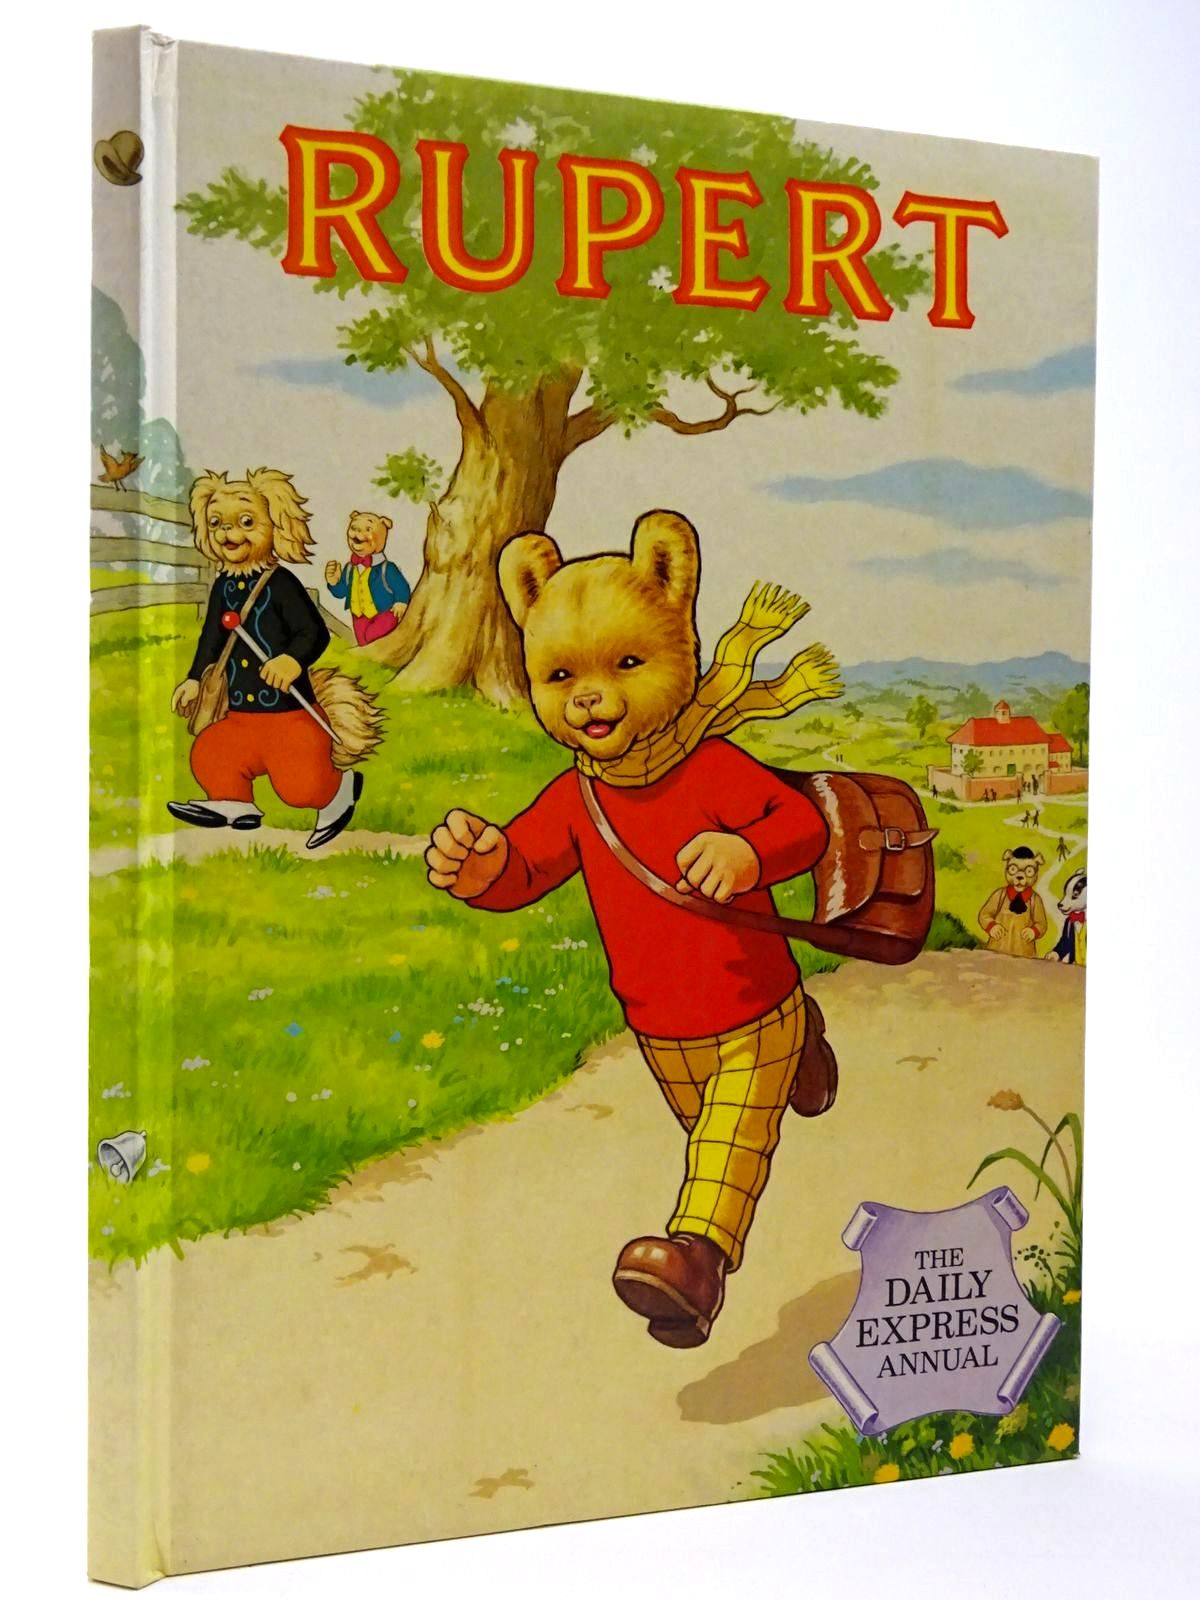 Photo of RUPERT ANNUAL 1984 illustrated by Harrold, John published by Express Newspapers Ltd. (STOCK CODE: 2129521)  for sale by Stella & Rose's Books